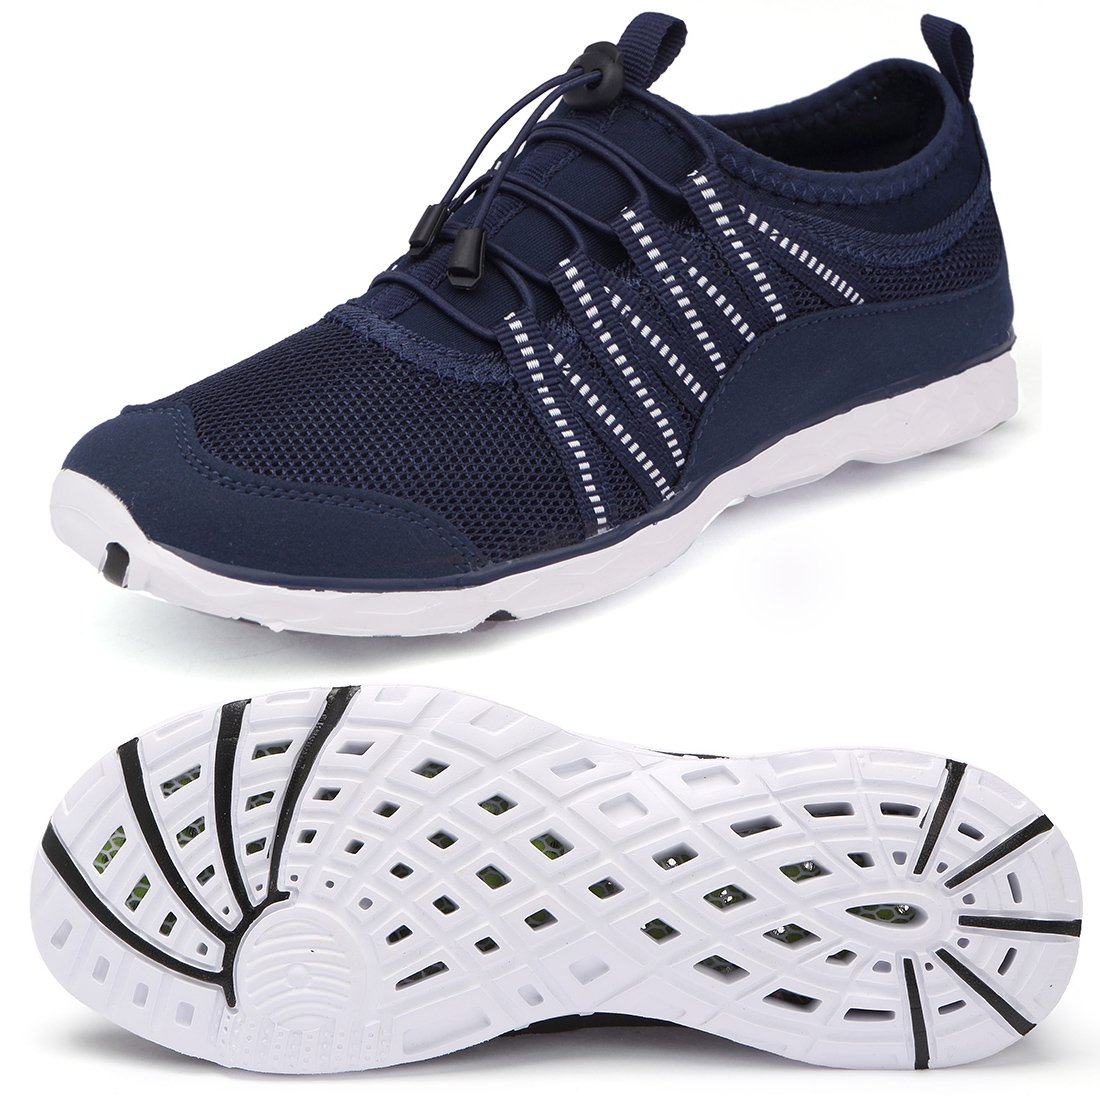 Aqua Water Shoes Men Women - Quick-Dry Lightweight for Summer Water Sports Outdoor Beach Pool Exercise Belilent